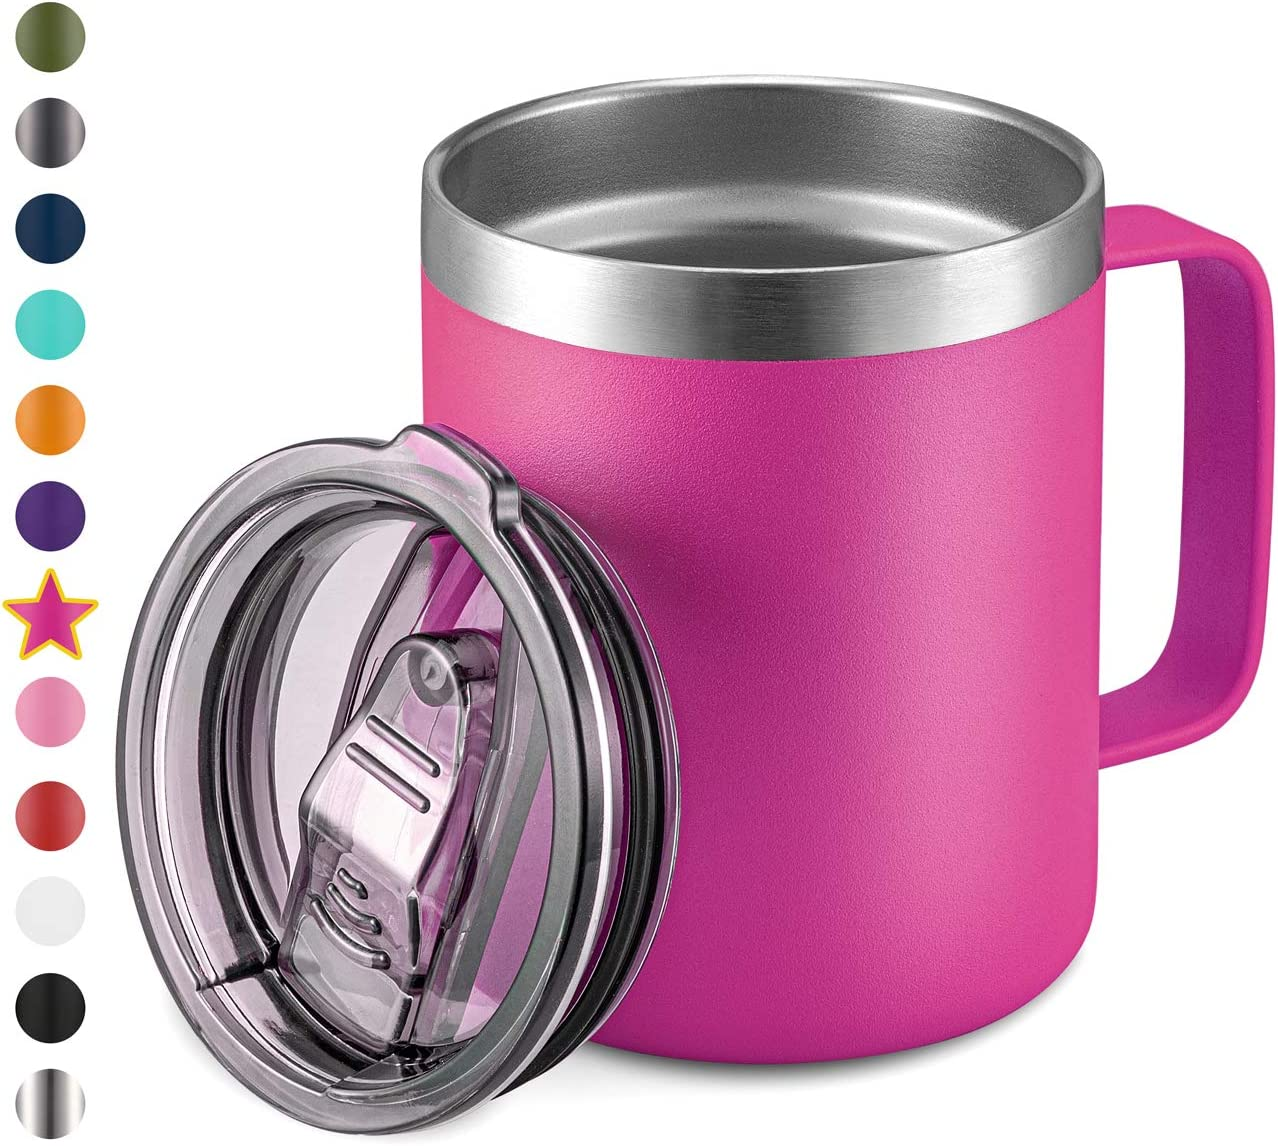 12oz Stainless Steel Insulated Coffee Mug with Handle, Double Wall Vacuum Travel Mug, Tumbler Cup with Sliding Lid, Fuschia